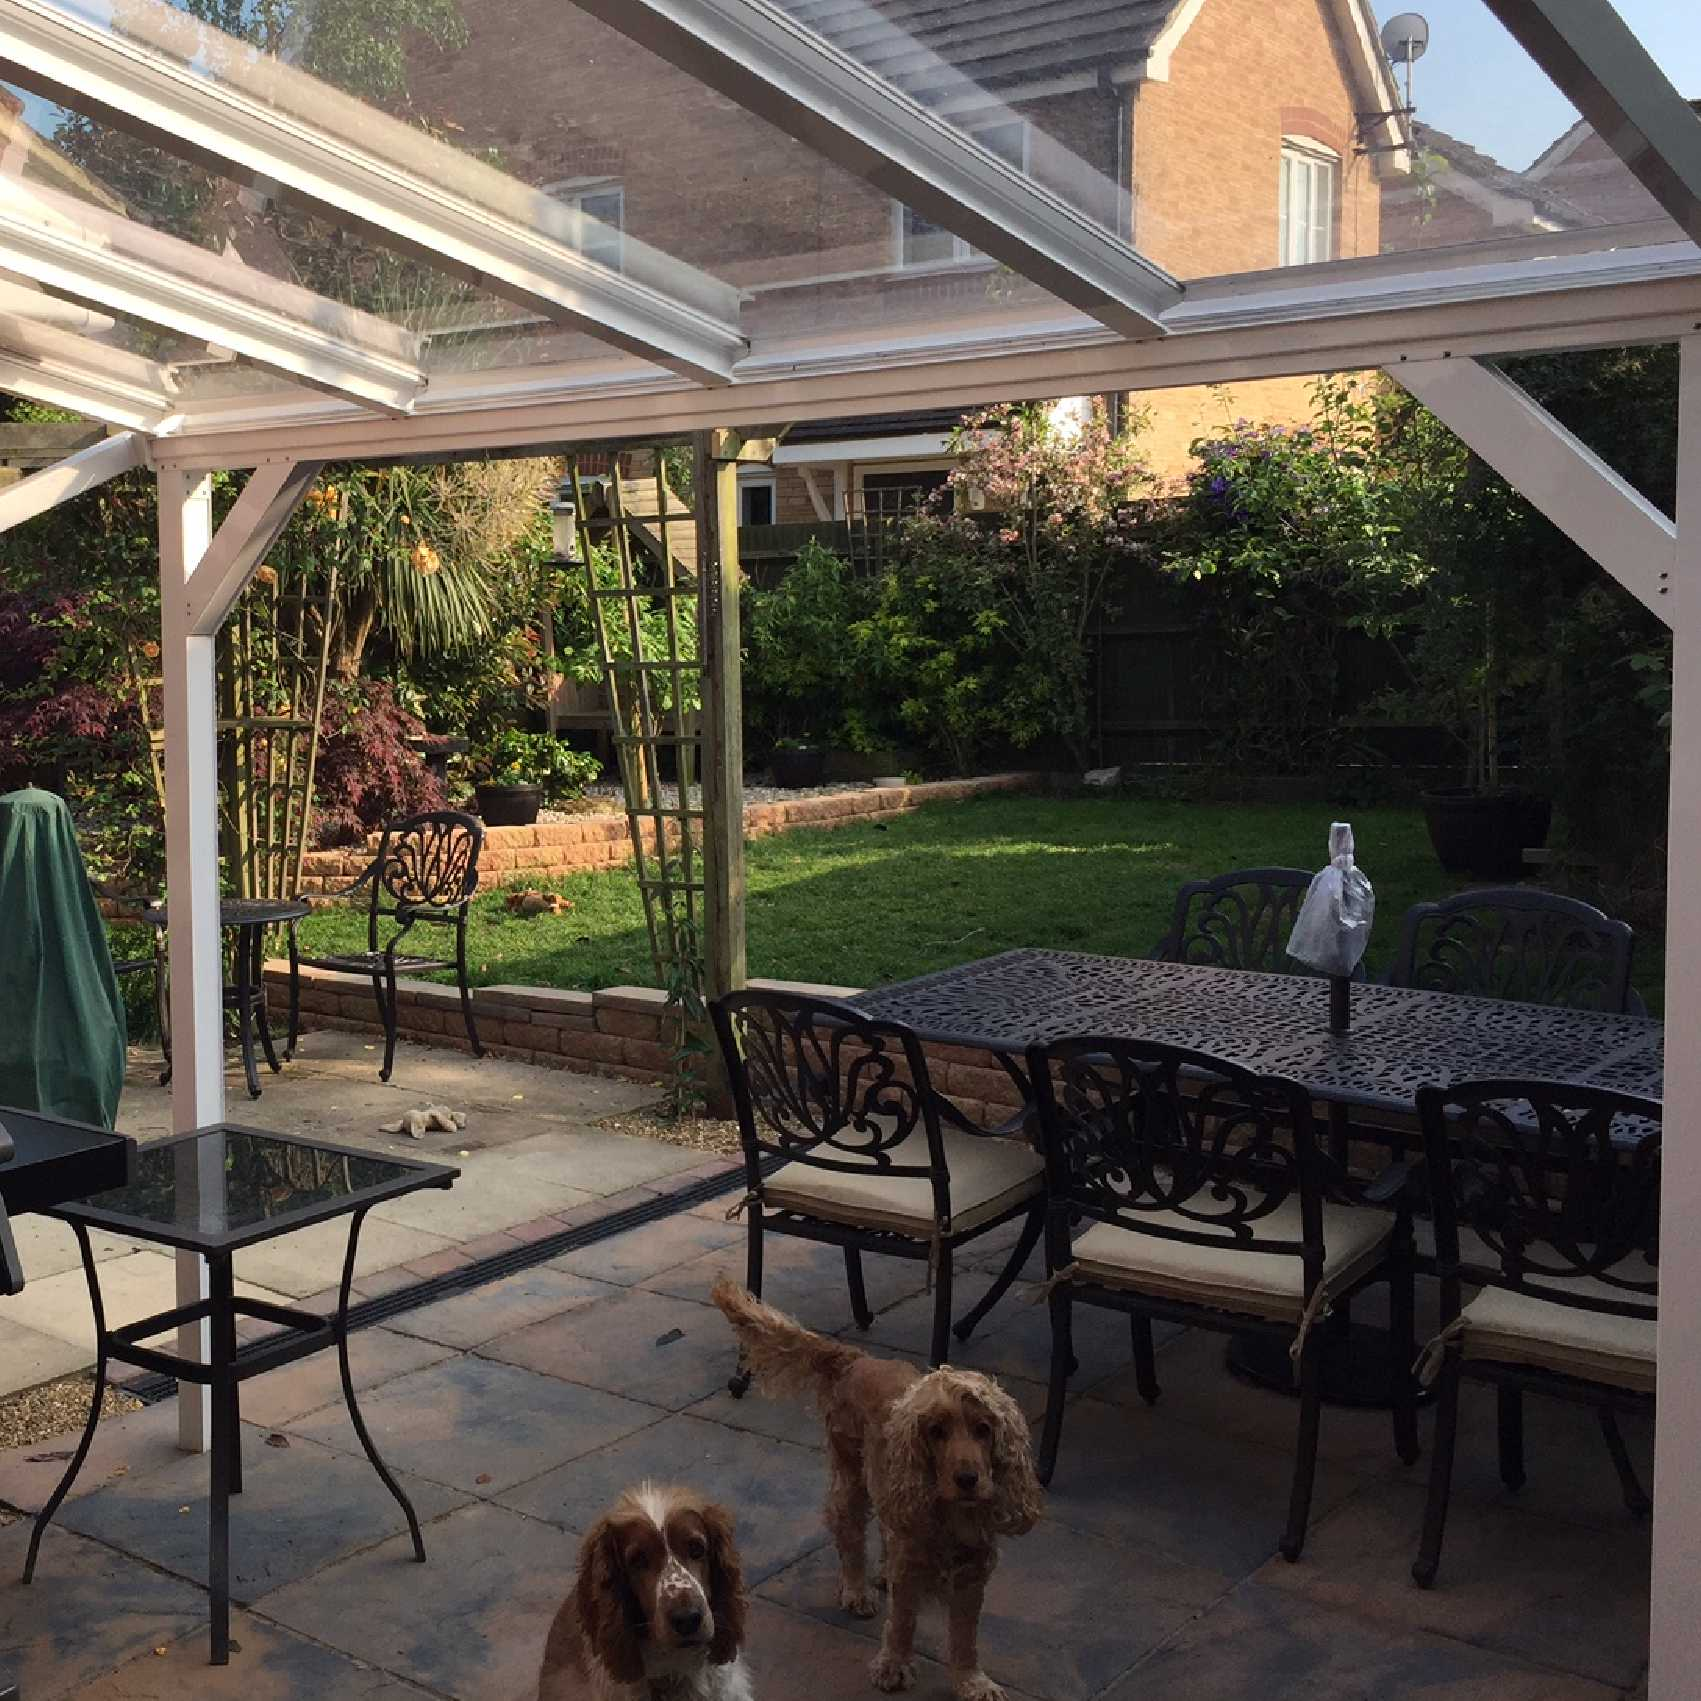 Affordable Omega Smart White Lean-To Canopy with 6mm Glass Clear Plate Polycarbonate Glazing - 9.8m (W) x 3.5m (P), (5) Supporting Posts